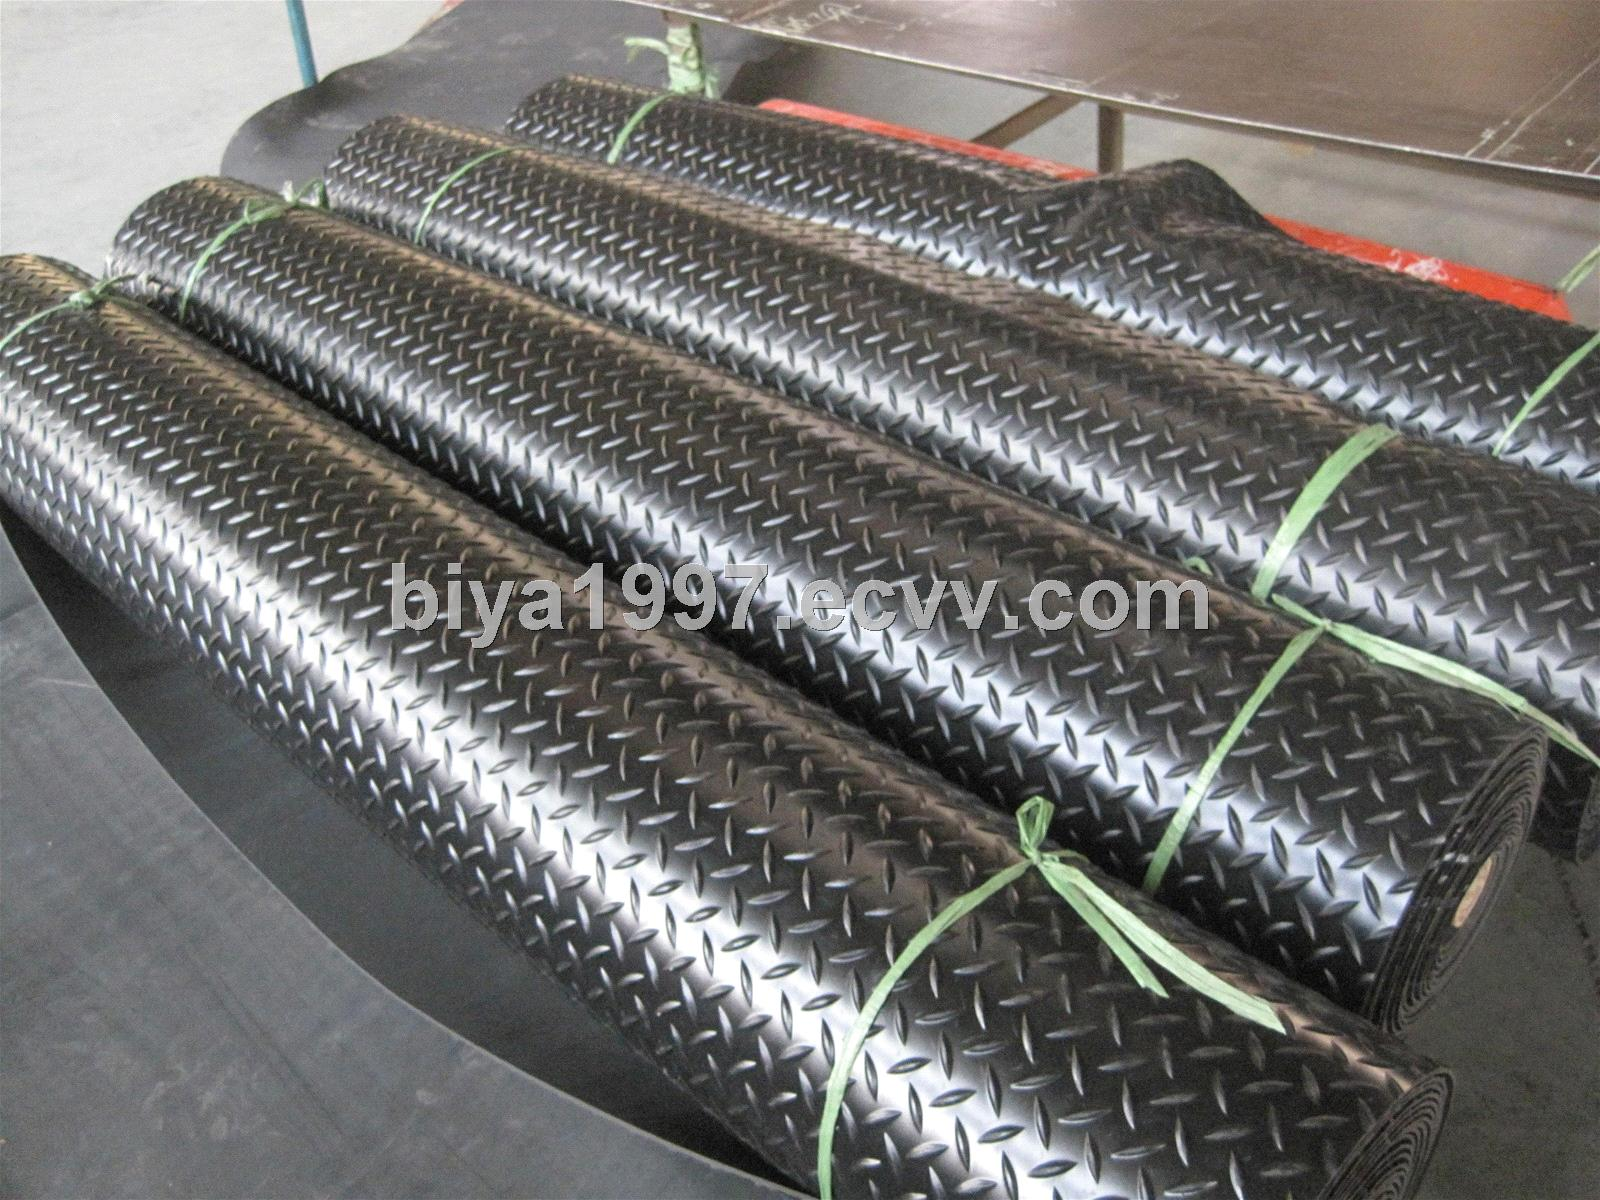 rolls promotional portrait roll floor outdoor pvc ribbed endearing mats mat durable matting professional rubber